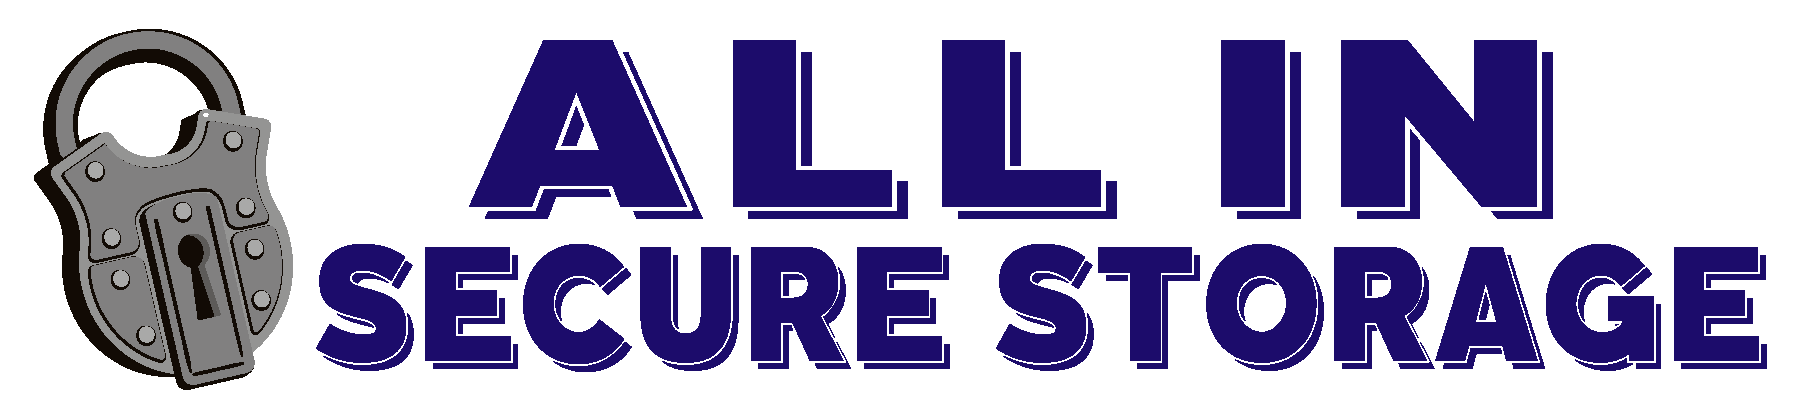 All in one storage logo